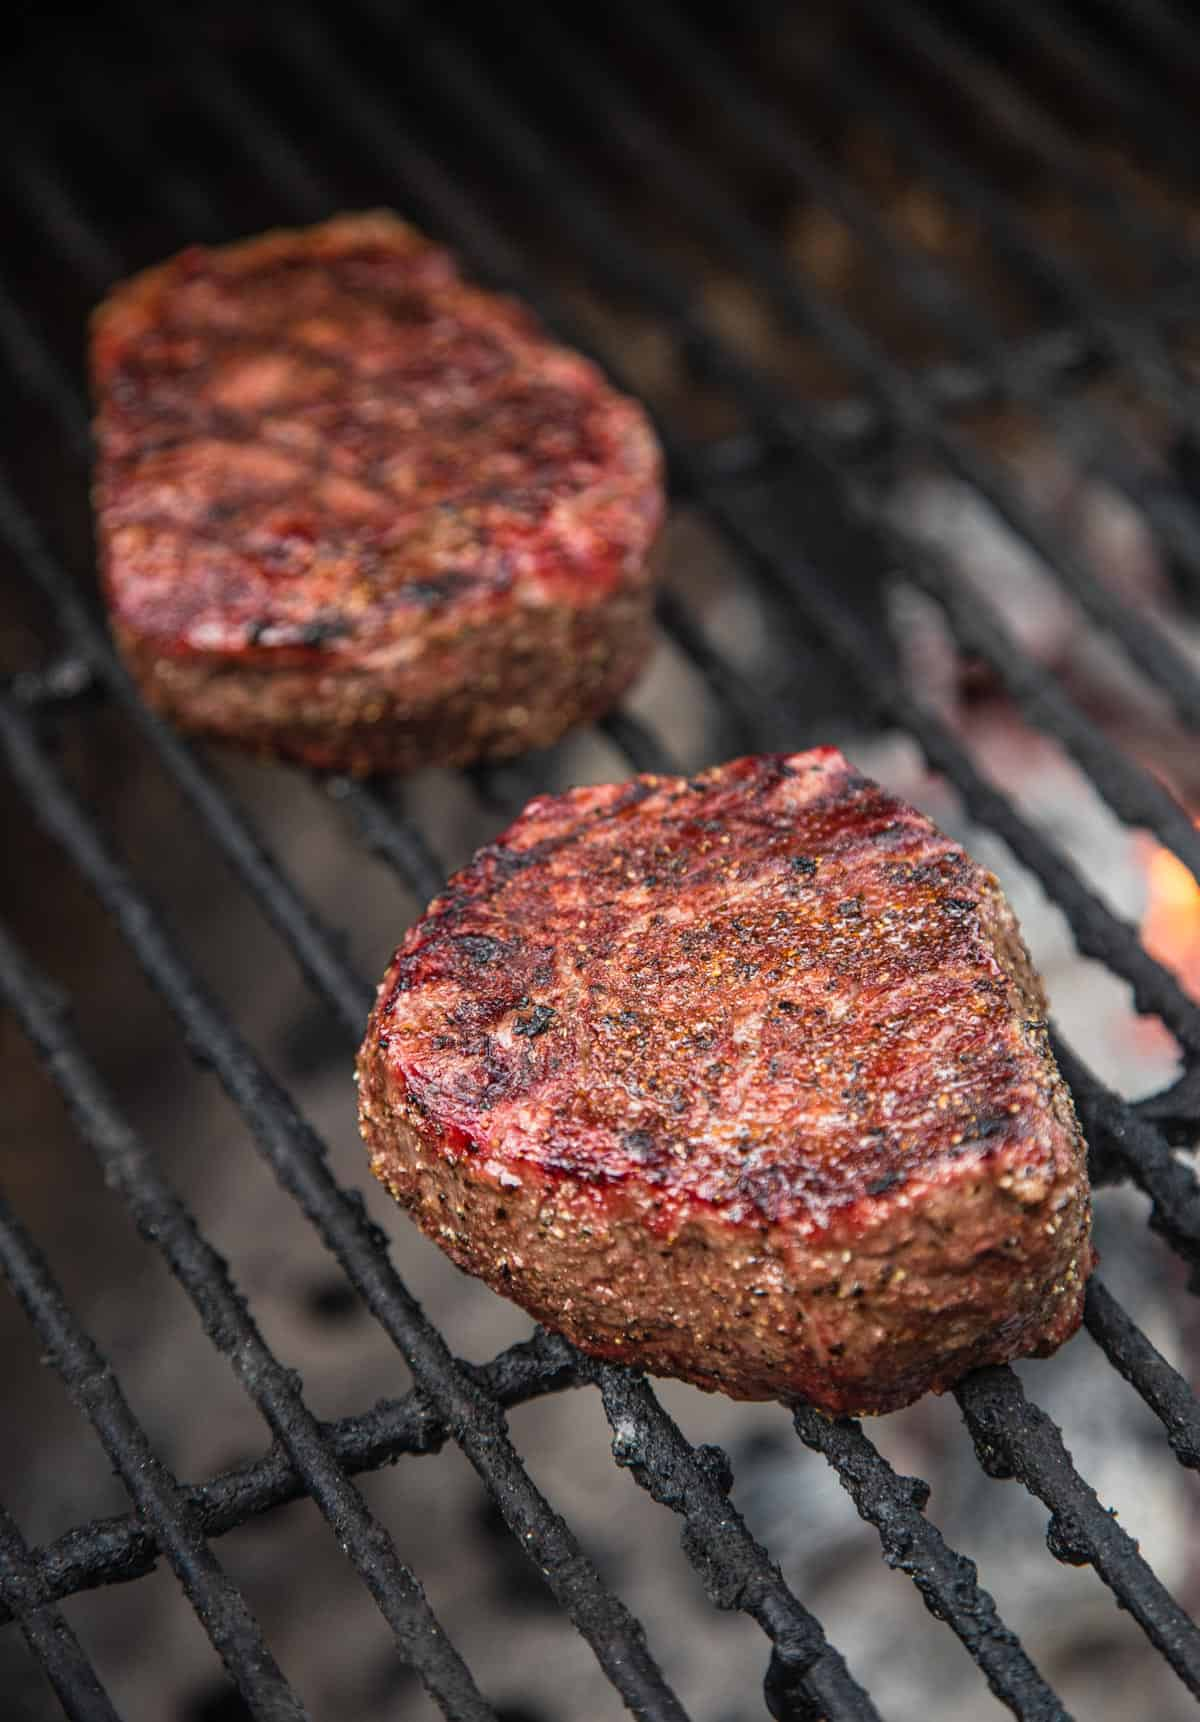 Grilling Filet Mignon on a grill